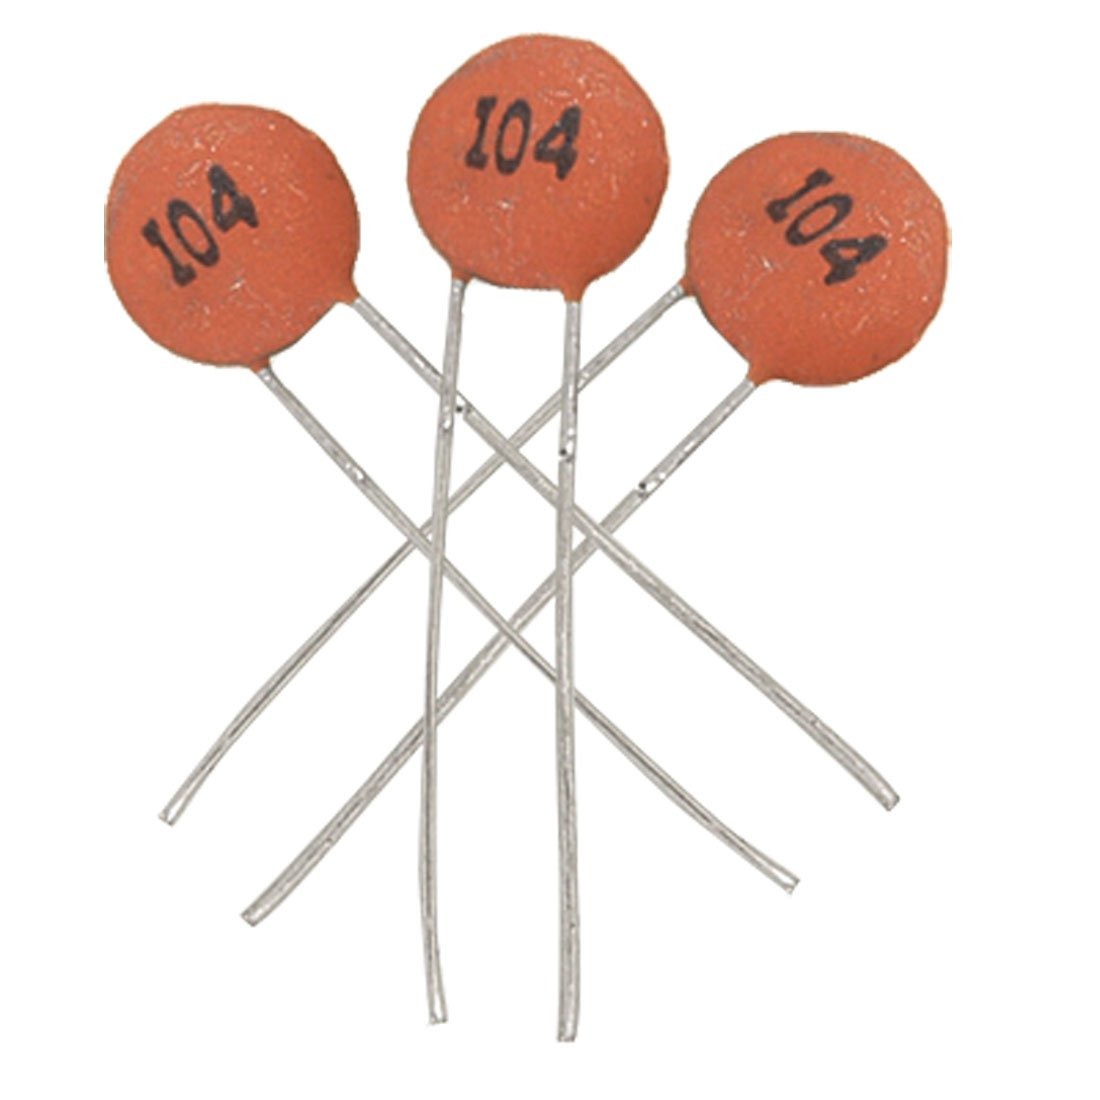 uxcell 50 x 100000pF 100nF 50V Low Voltage DIP Ceramic Disc Capacitors